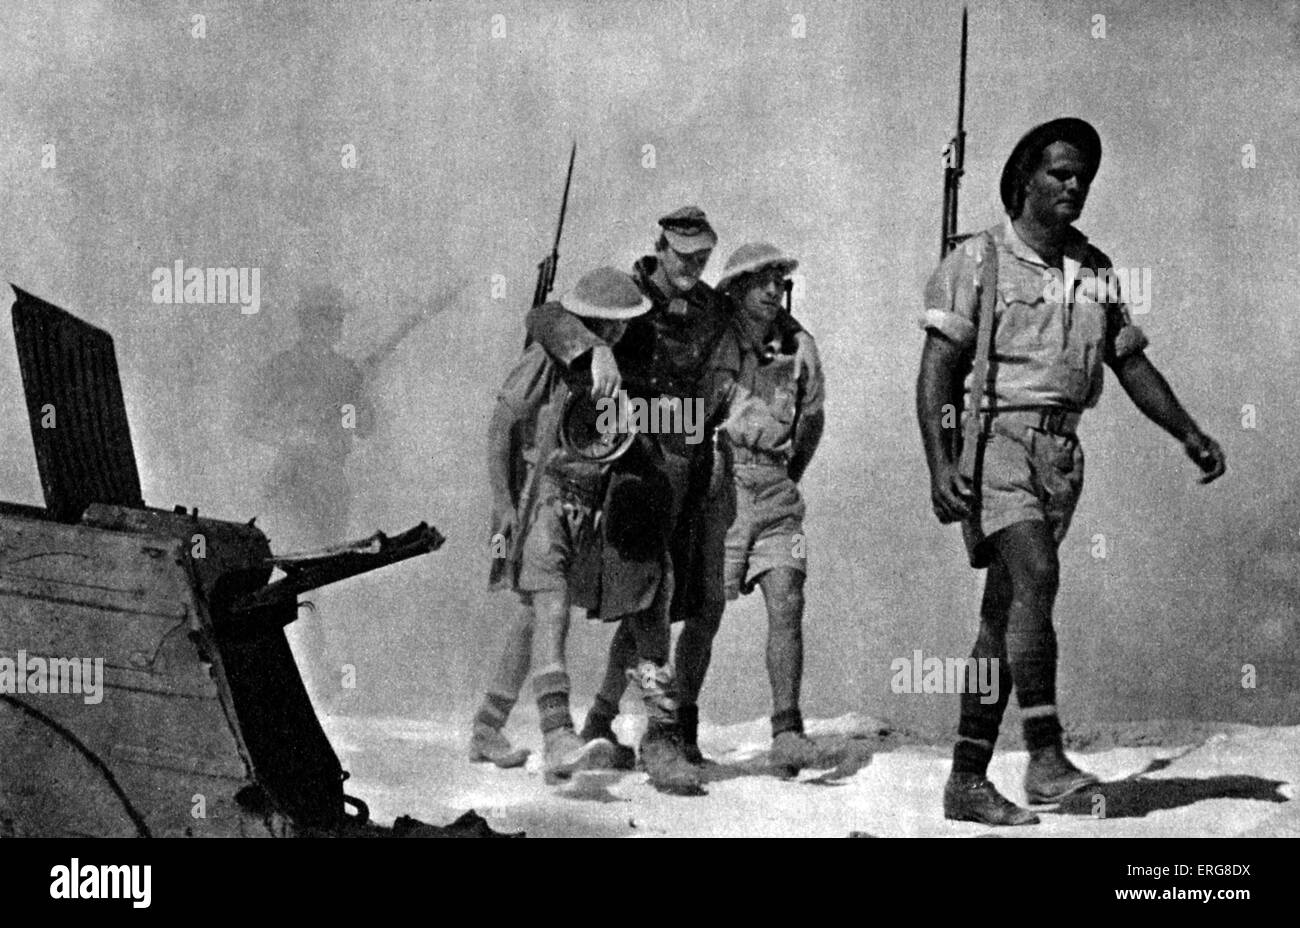 The Eighth Army - WWII.  The Battle of Egypt, October 1942. Australian soldiers bring in a wounded prisoner. - Stock Image